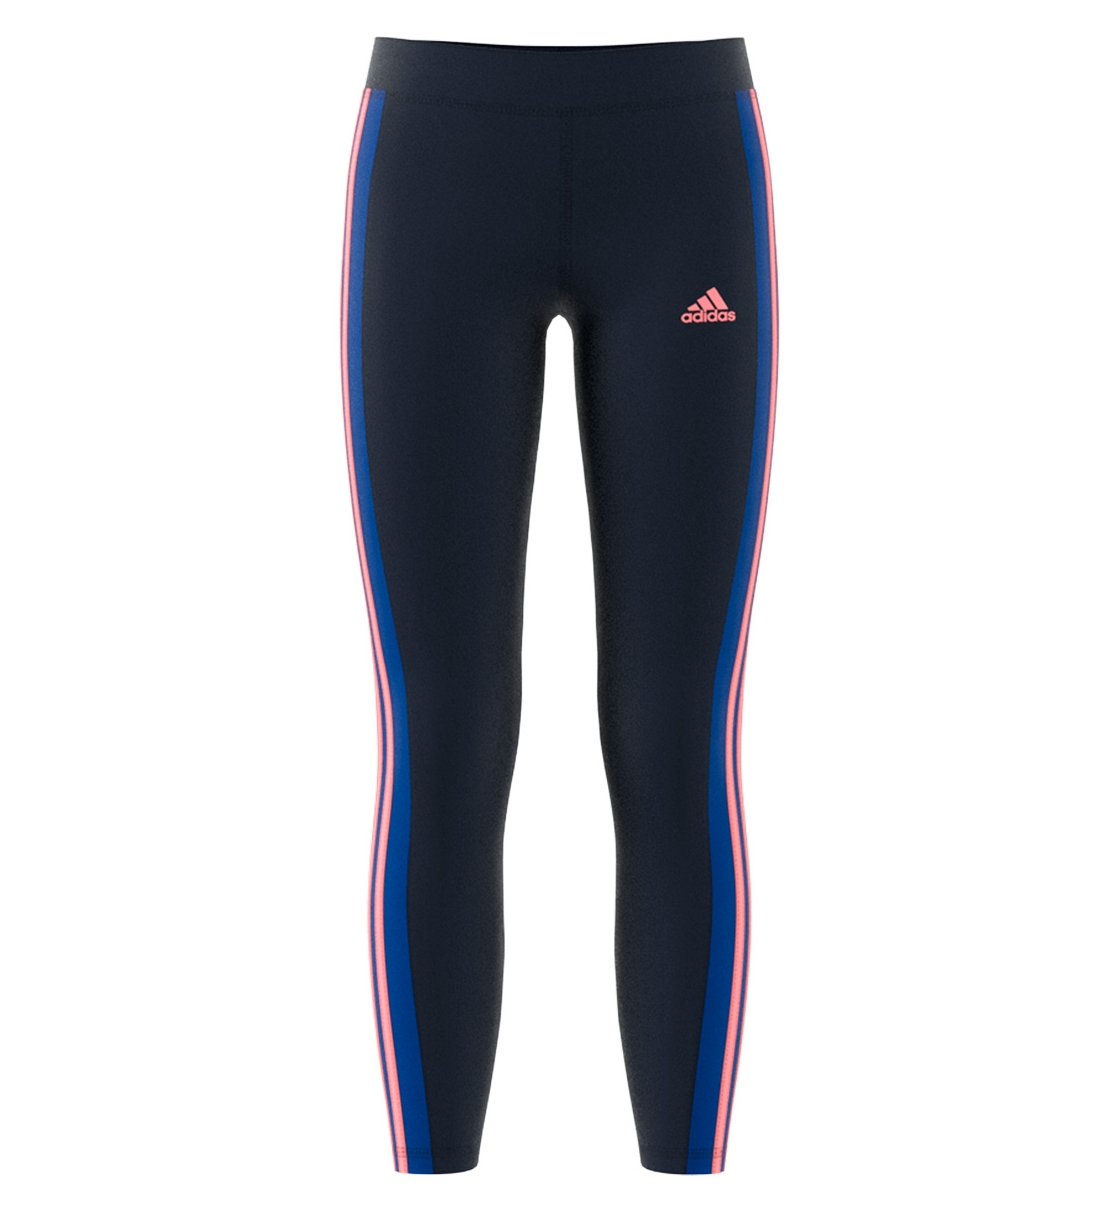 Adidas Fw20 Young Girls 3 Stripes Tight